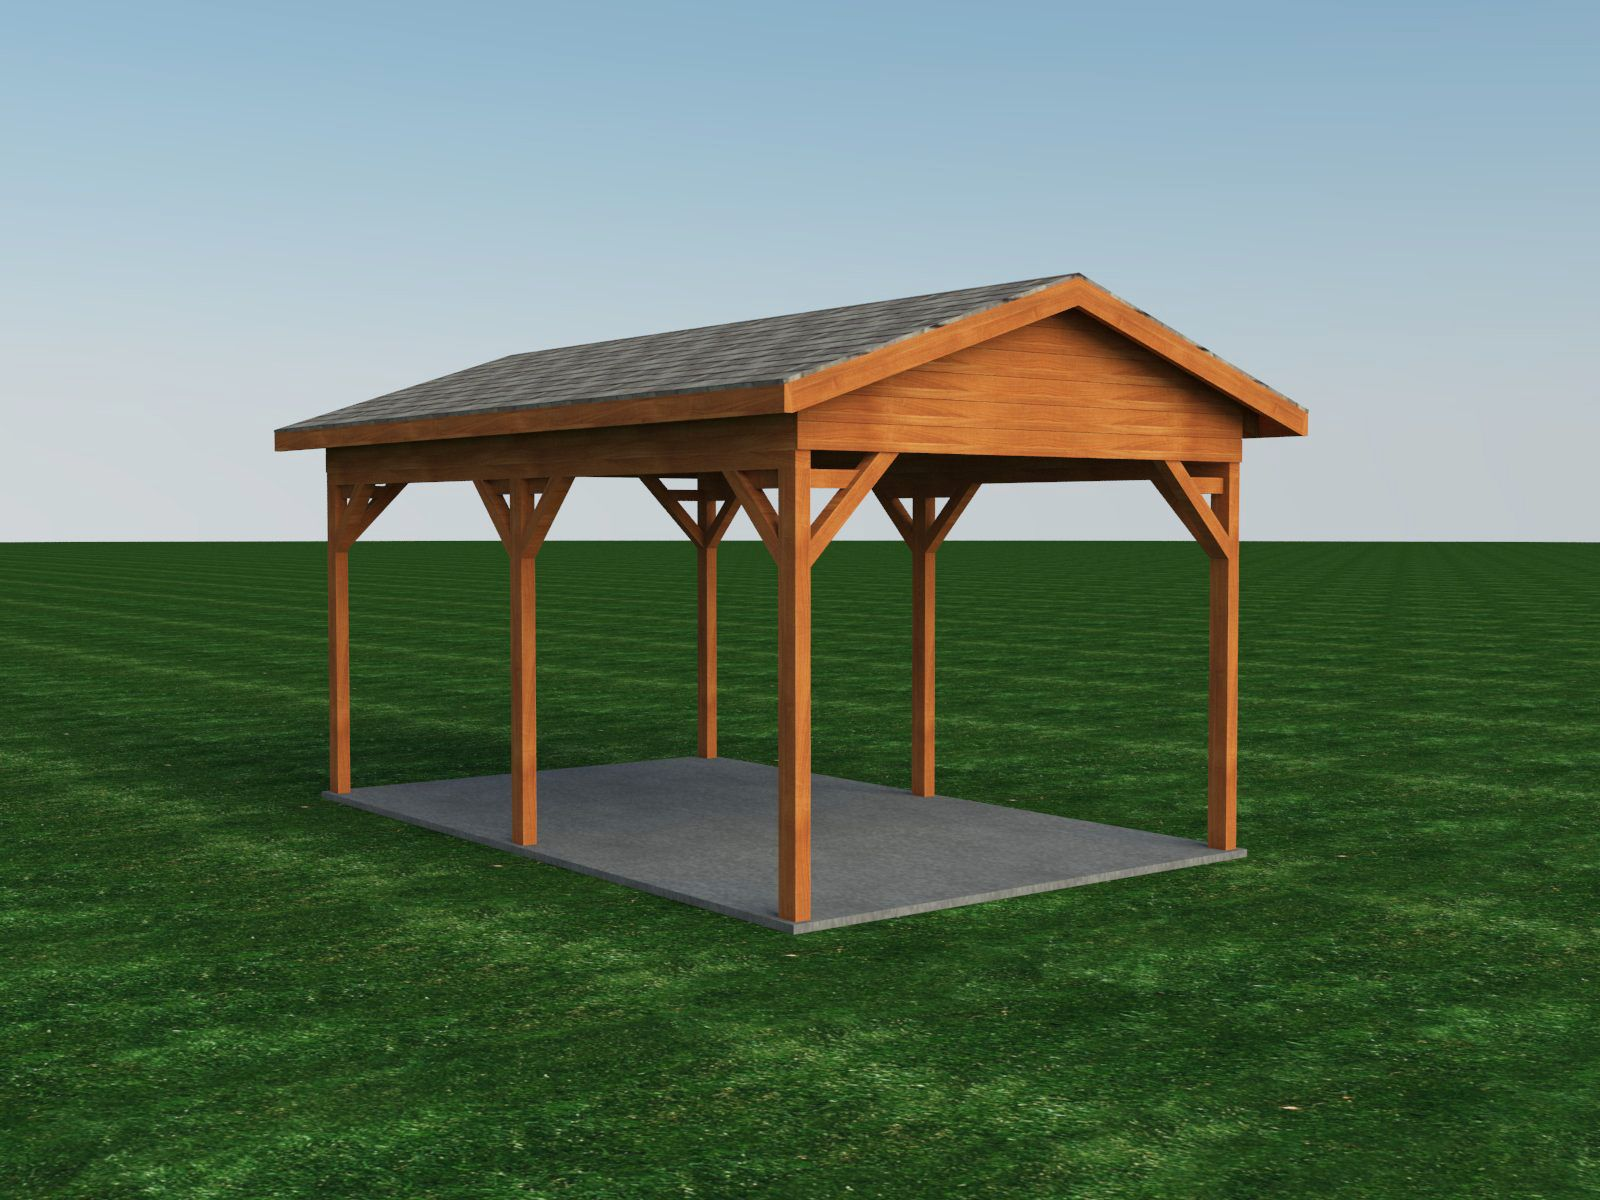 Carport Plans DIY Outdoor Canopy Car Shelter Gazebo Garage